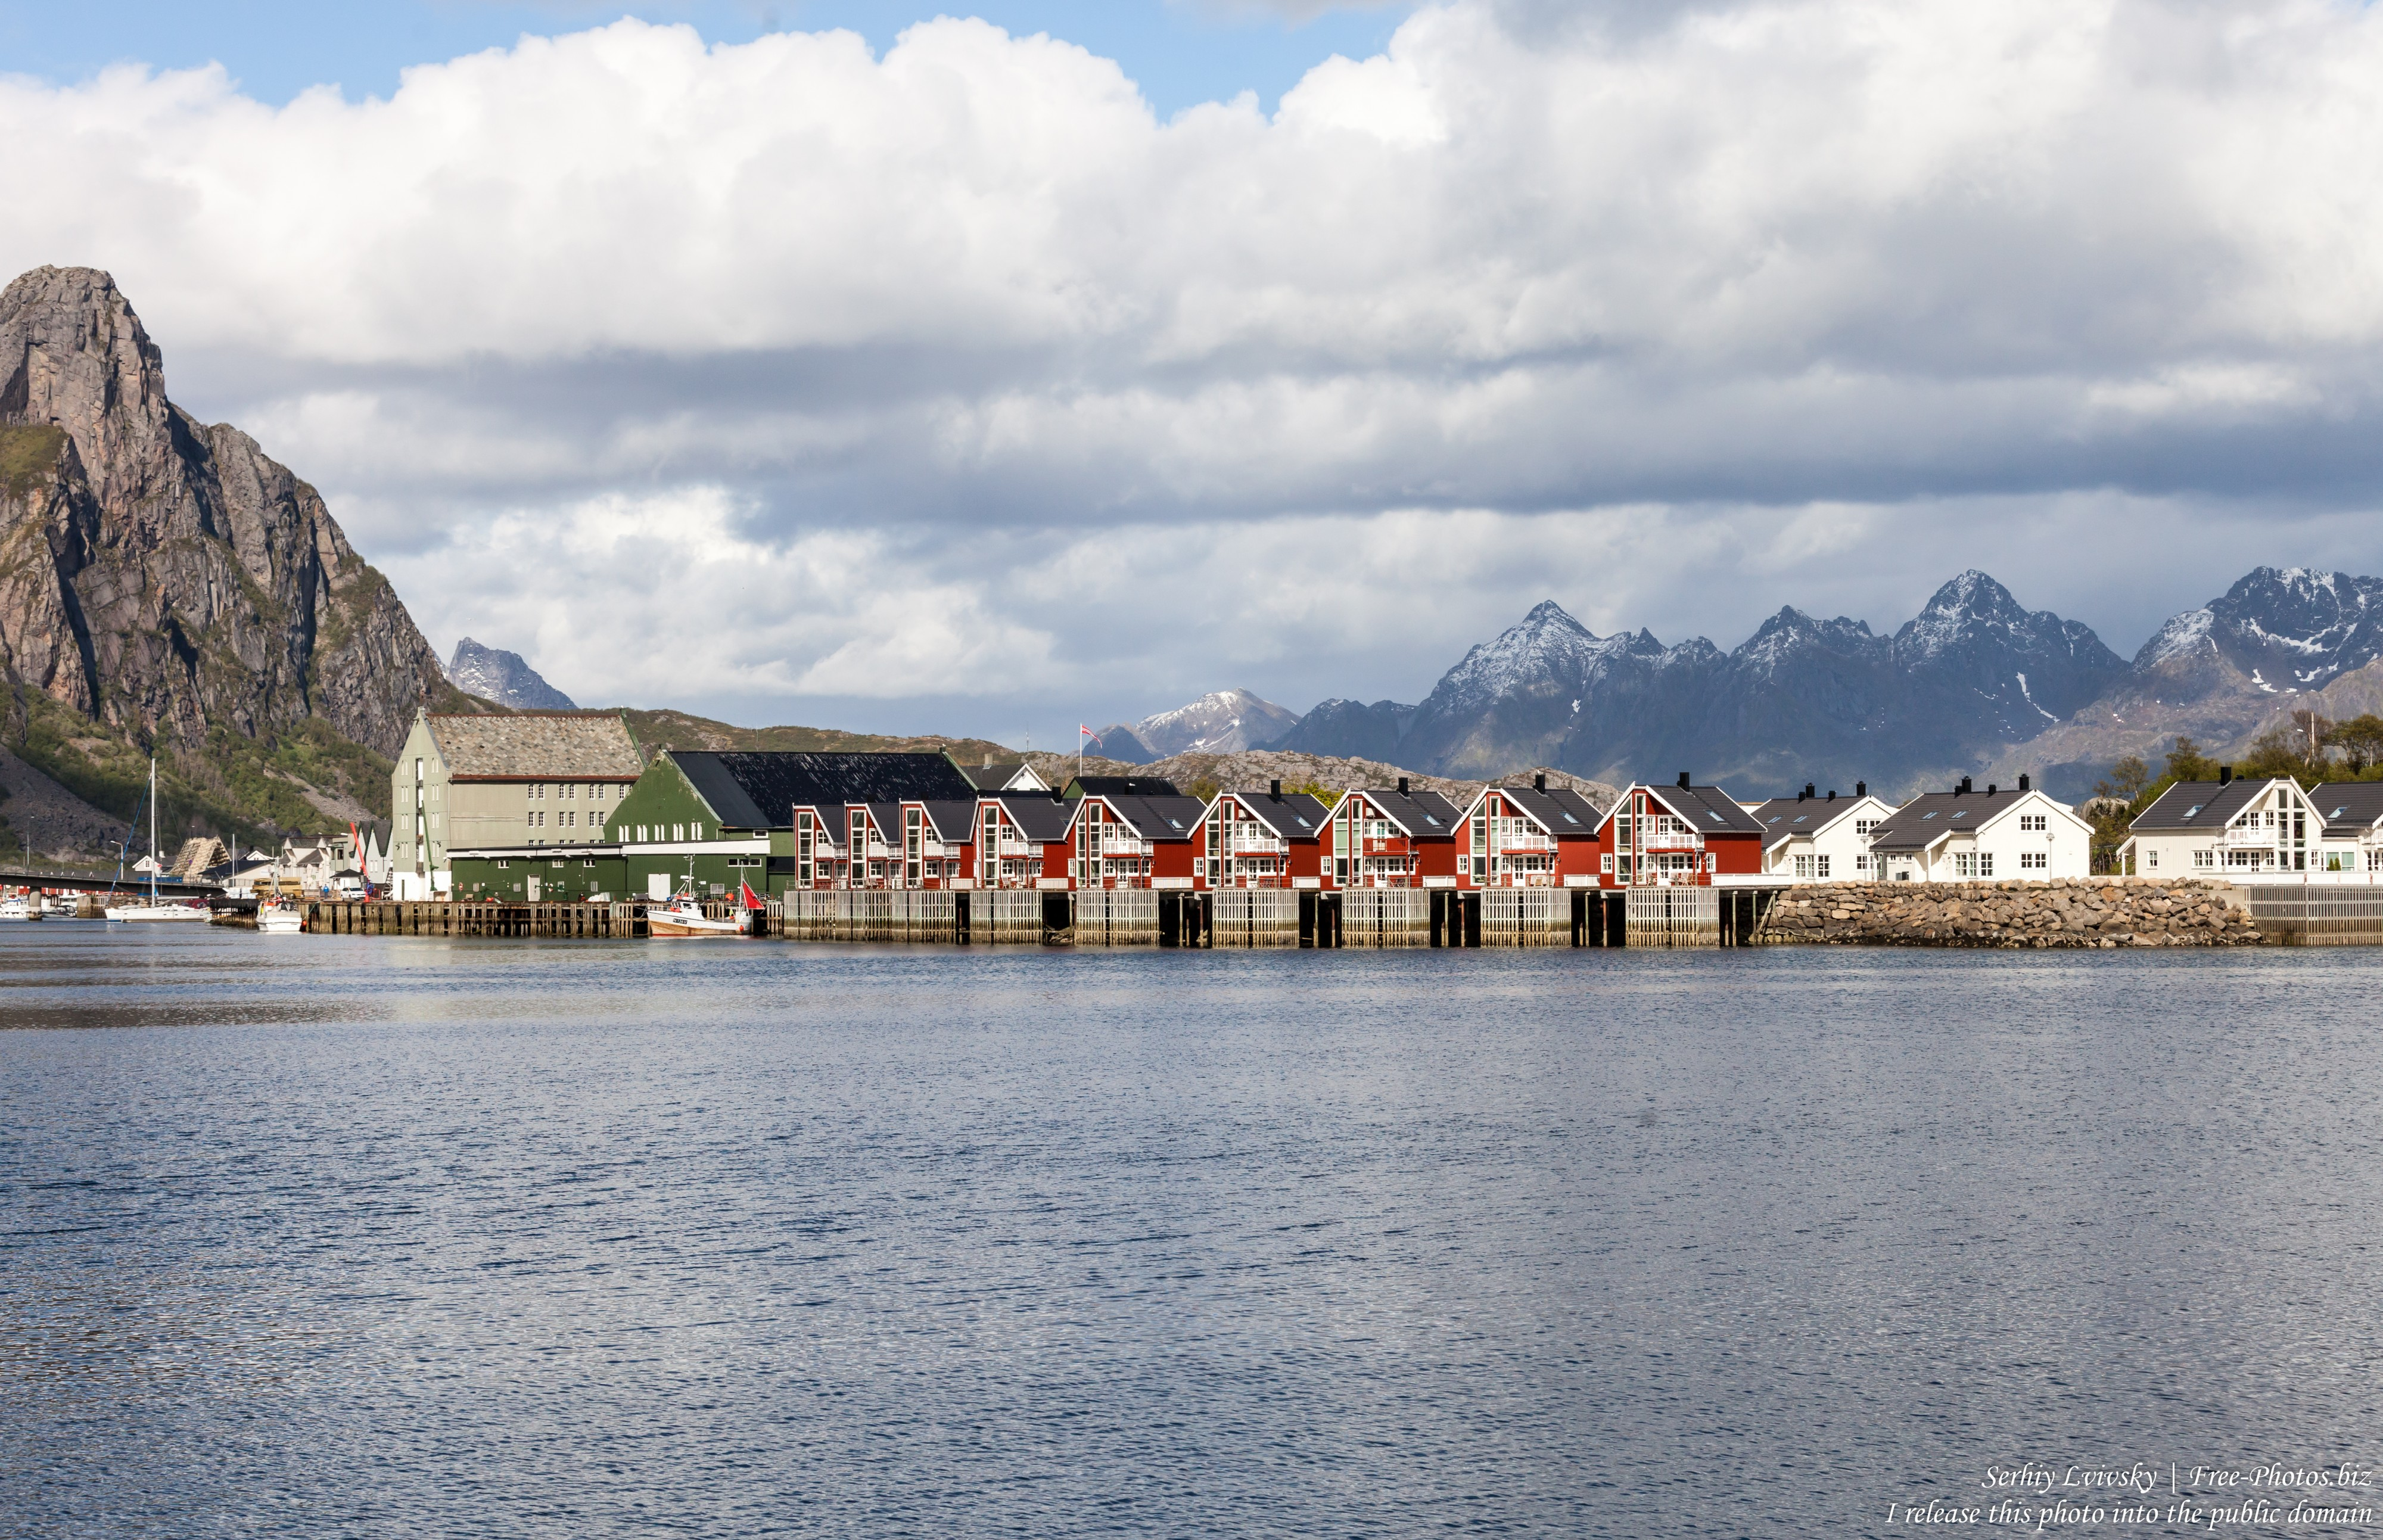 Svolvaer, Lofoten, Norway photographed in June 2018 by Serhiy Lvivsky, picture 9